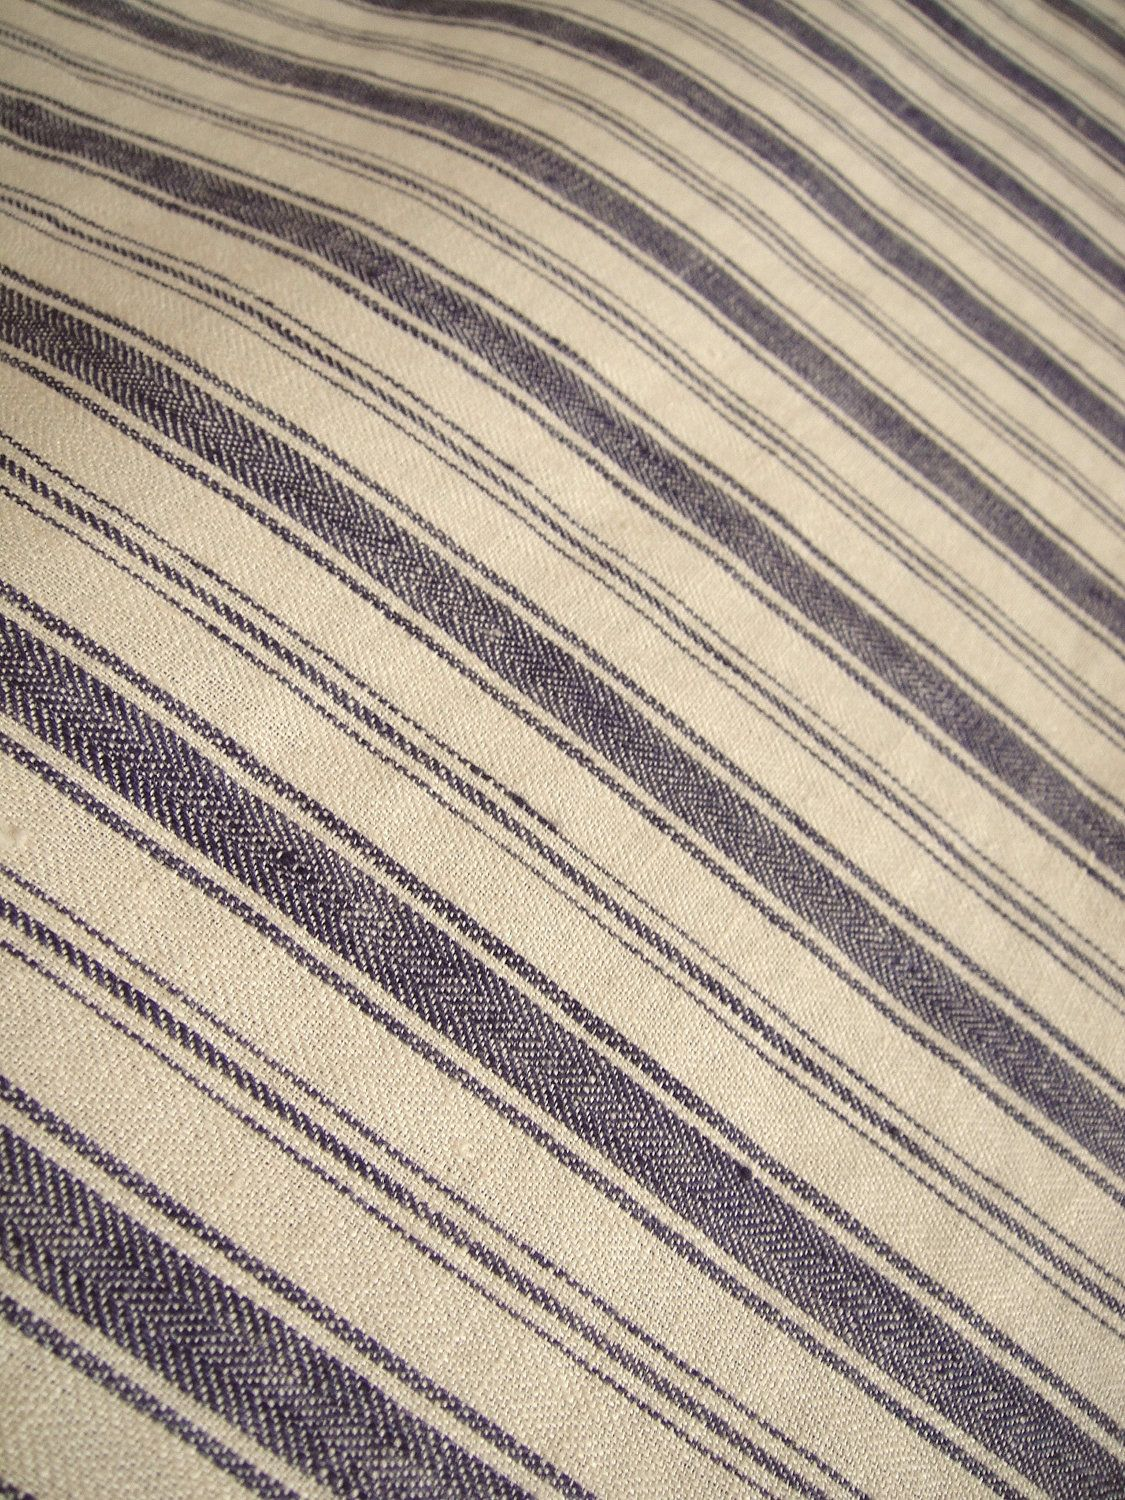 Stoff Jalousien Meterage French Belgian Linen Ticking Fabric By Libeco